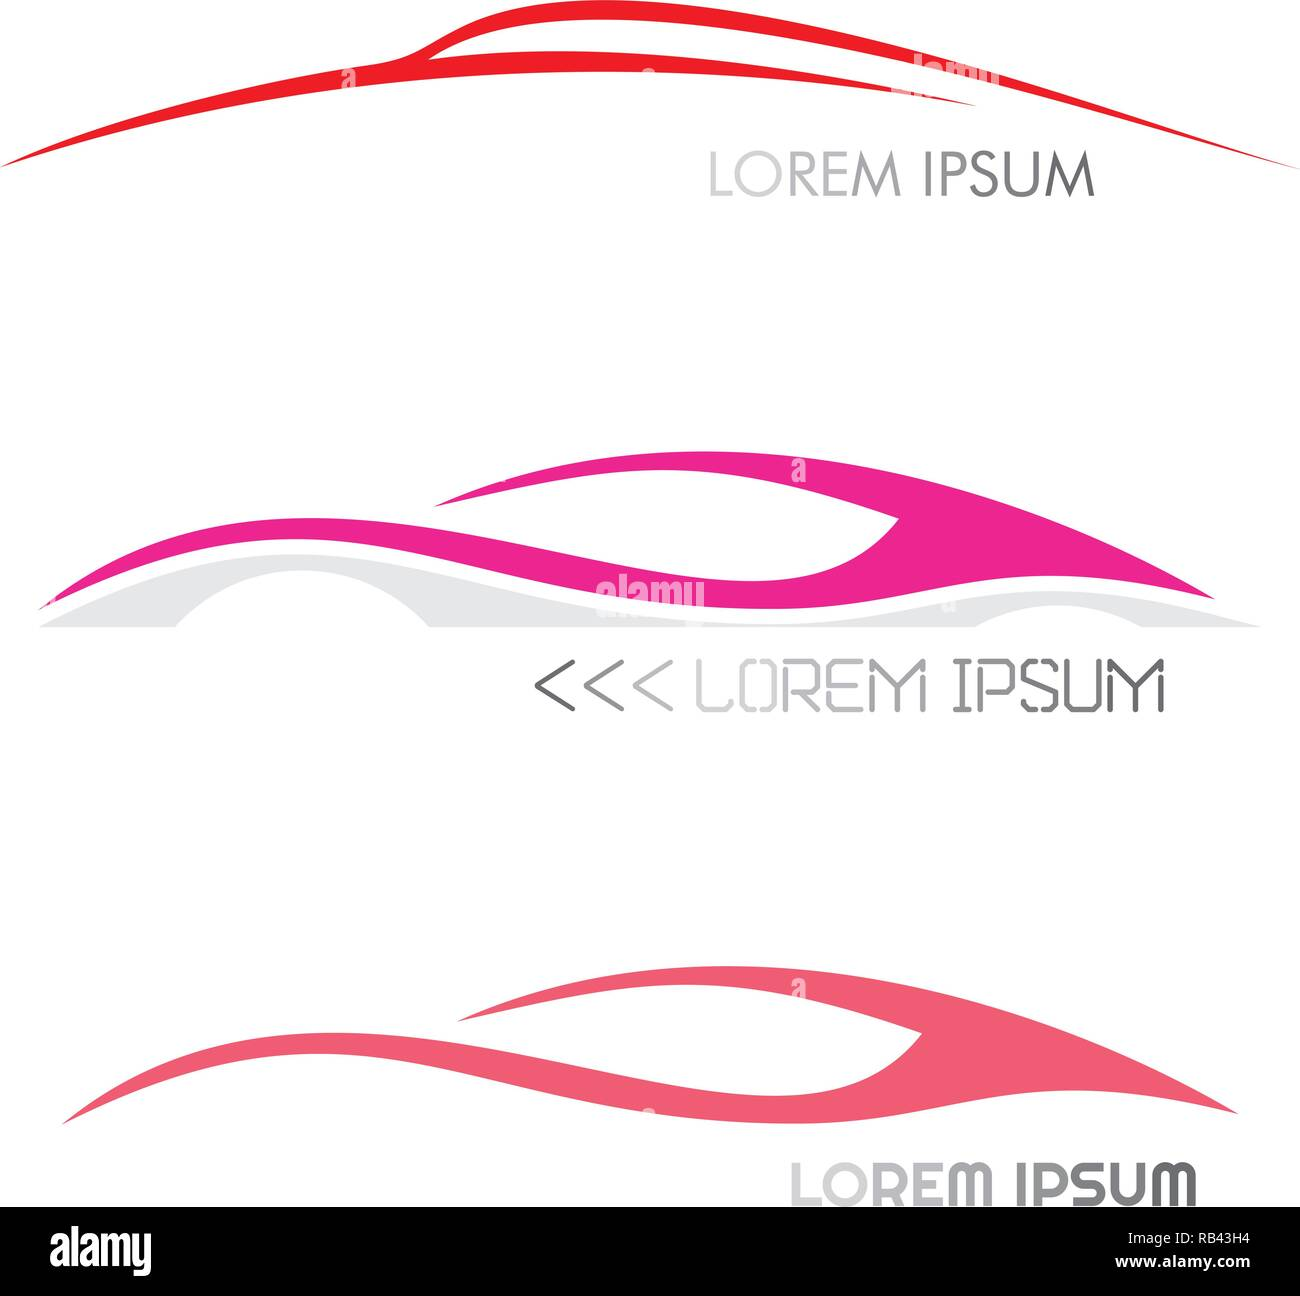 Three variants of modern car logo. Moving car images. Vector icons isolated on a white background. Stock Vector